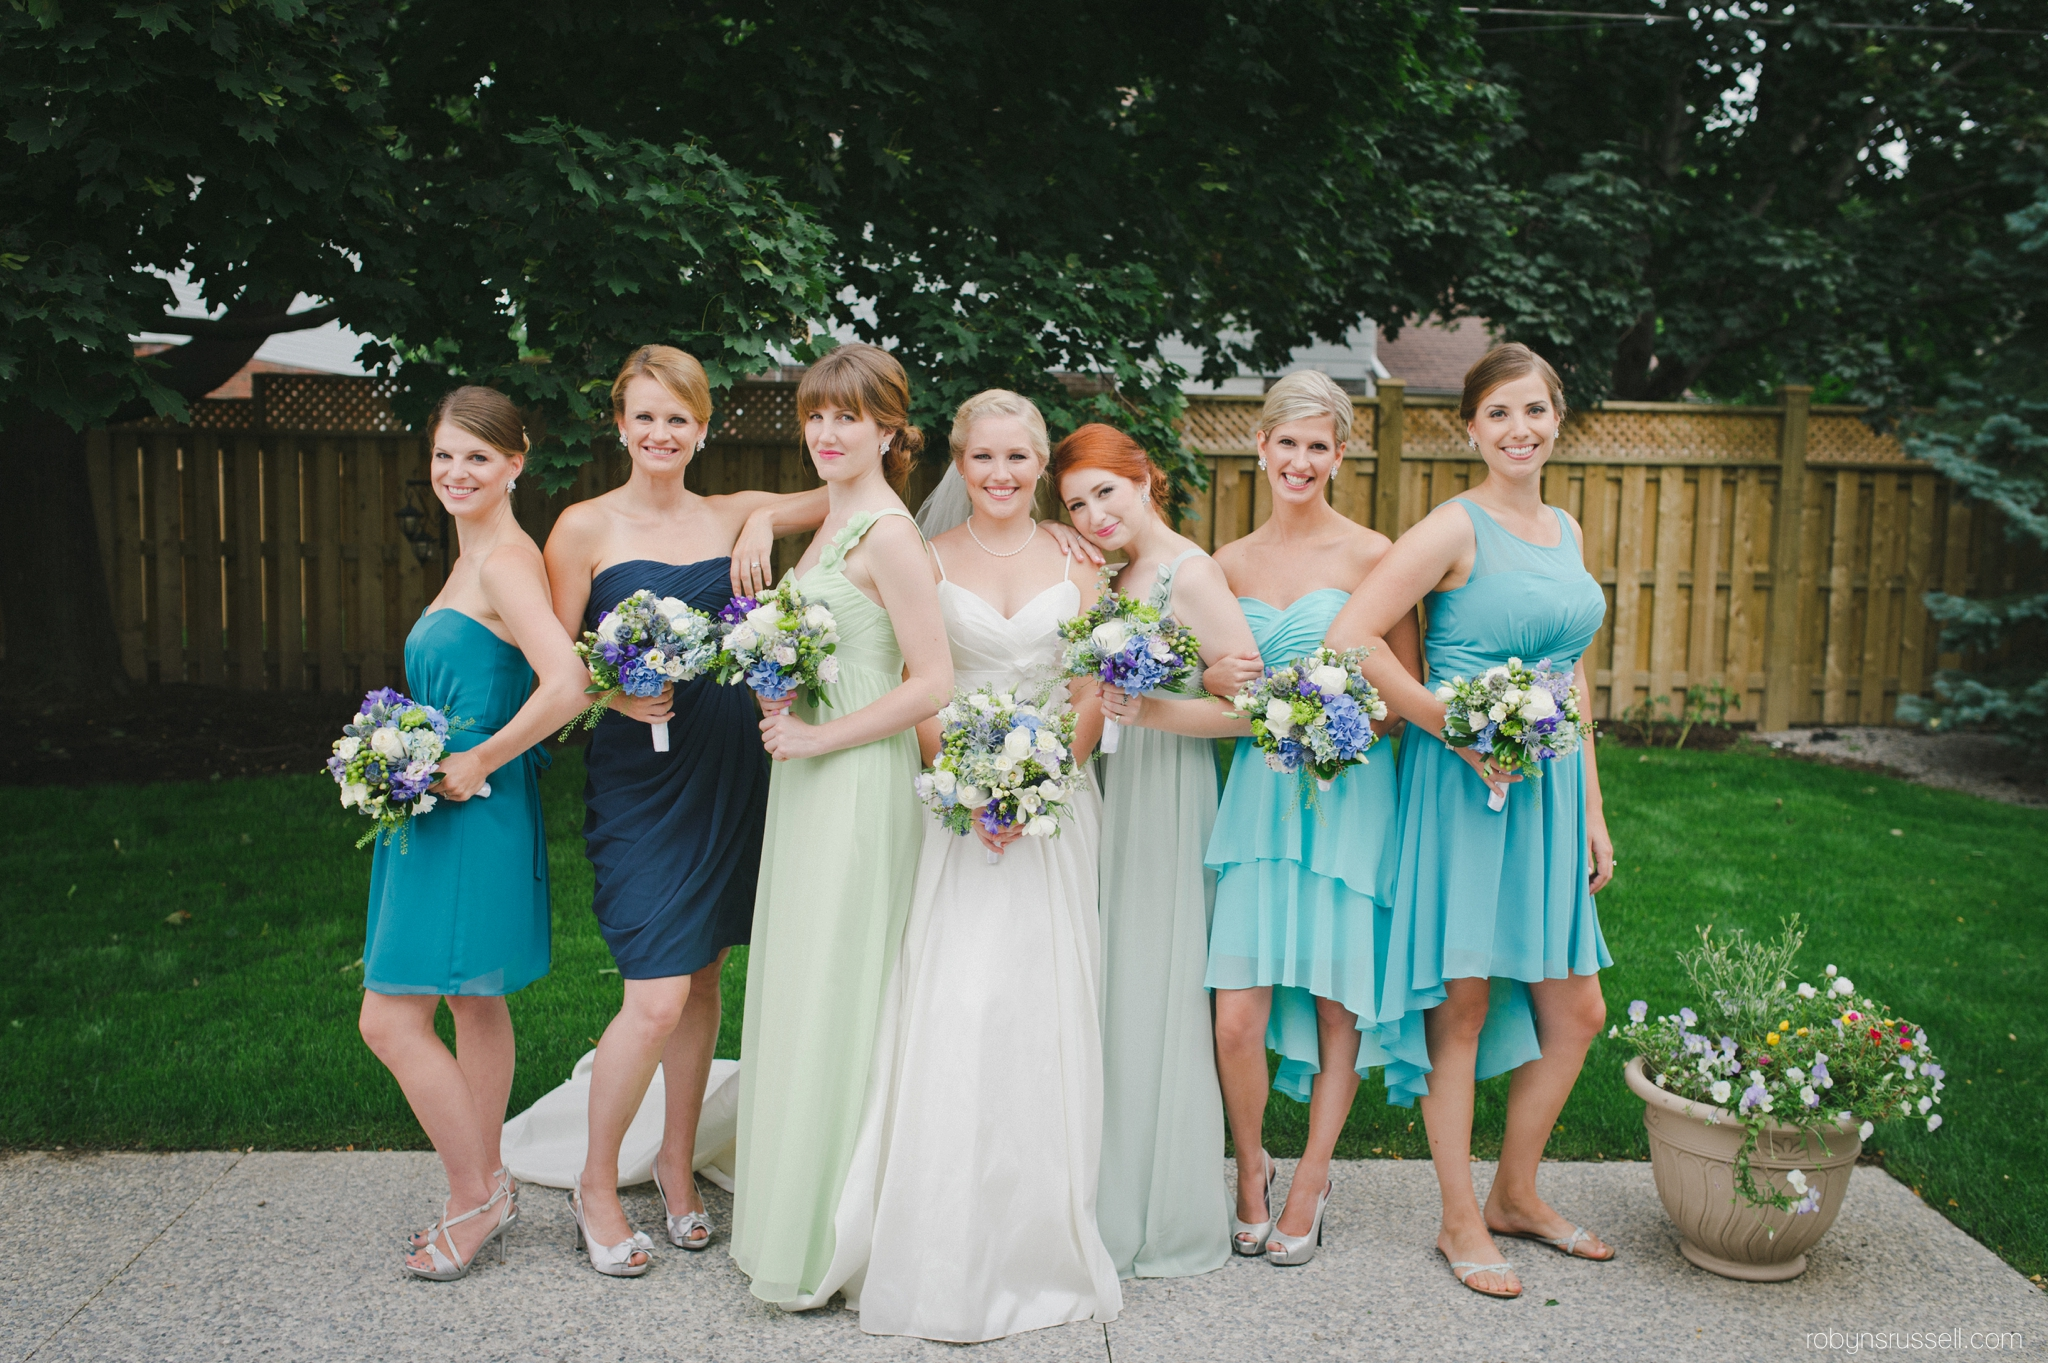 0090-bride-and-bridal-party.jpg